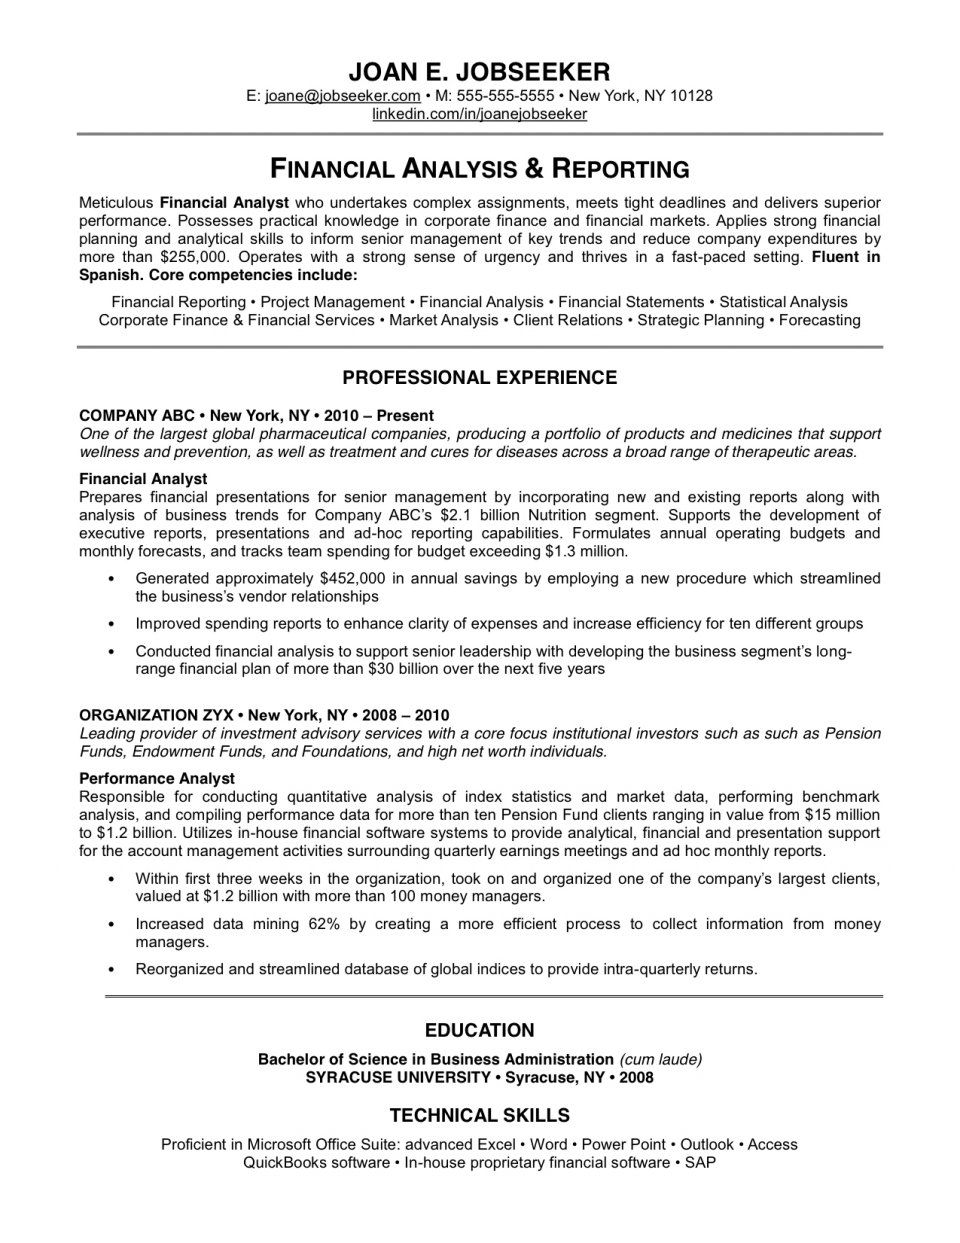 Recruiter Resume Sample 19 Reasons Why This Is An Excellent Resume  Cover Letter Sample